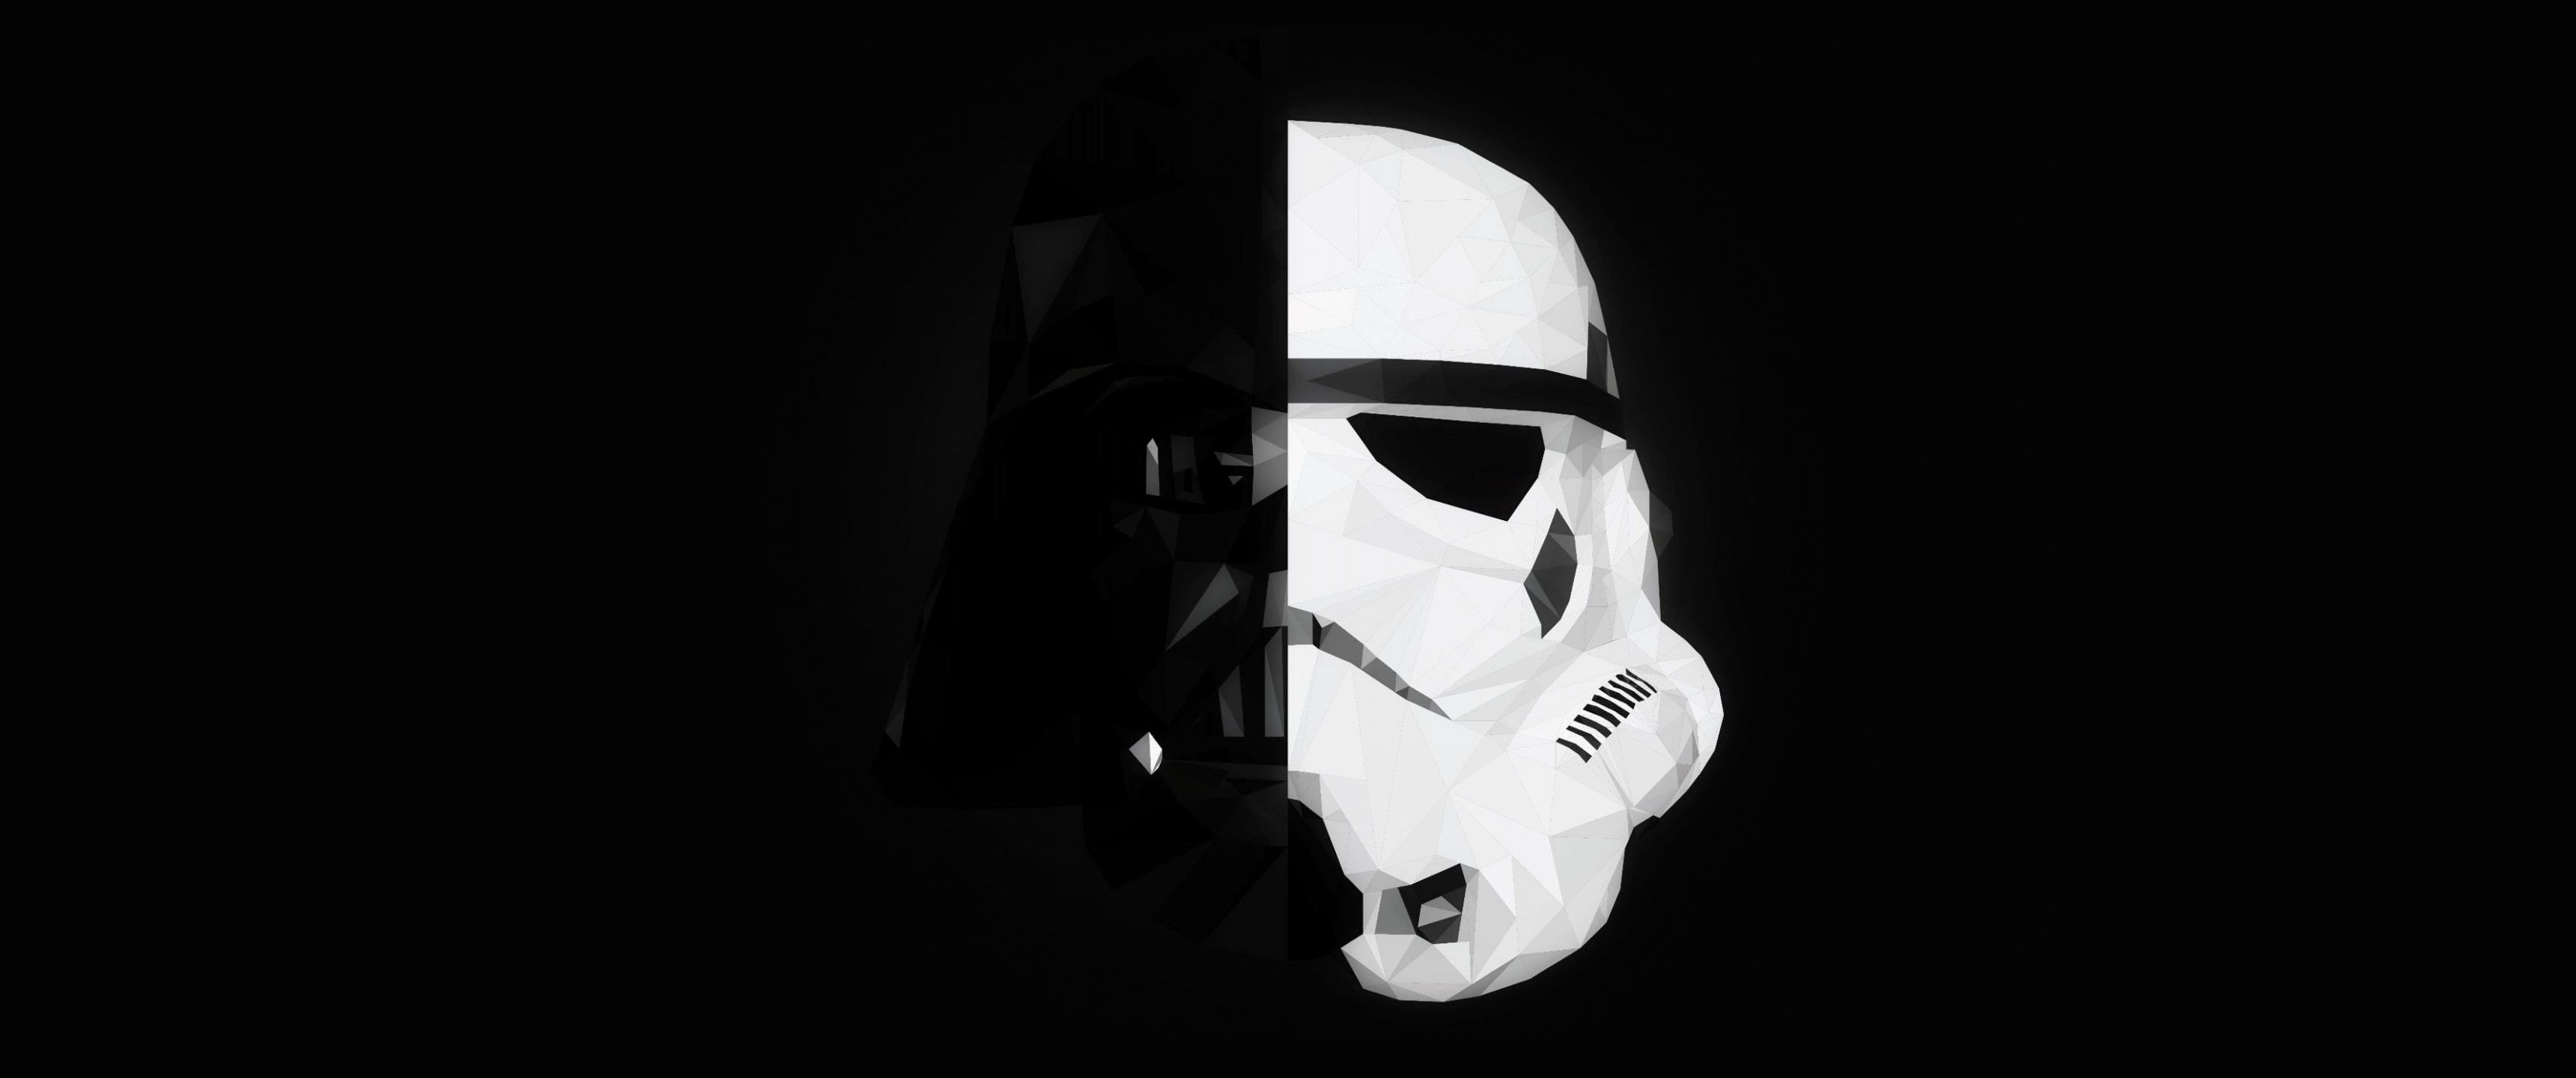 Star Wars Dual Monitor Wallpaper